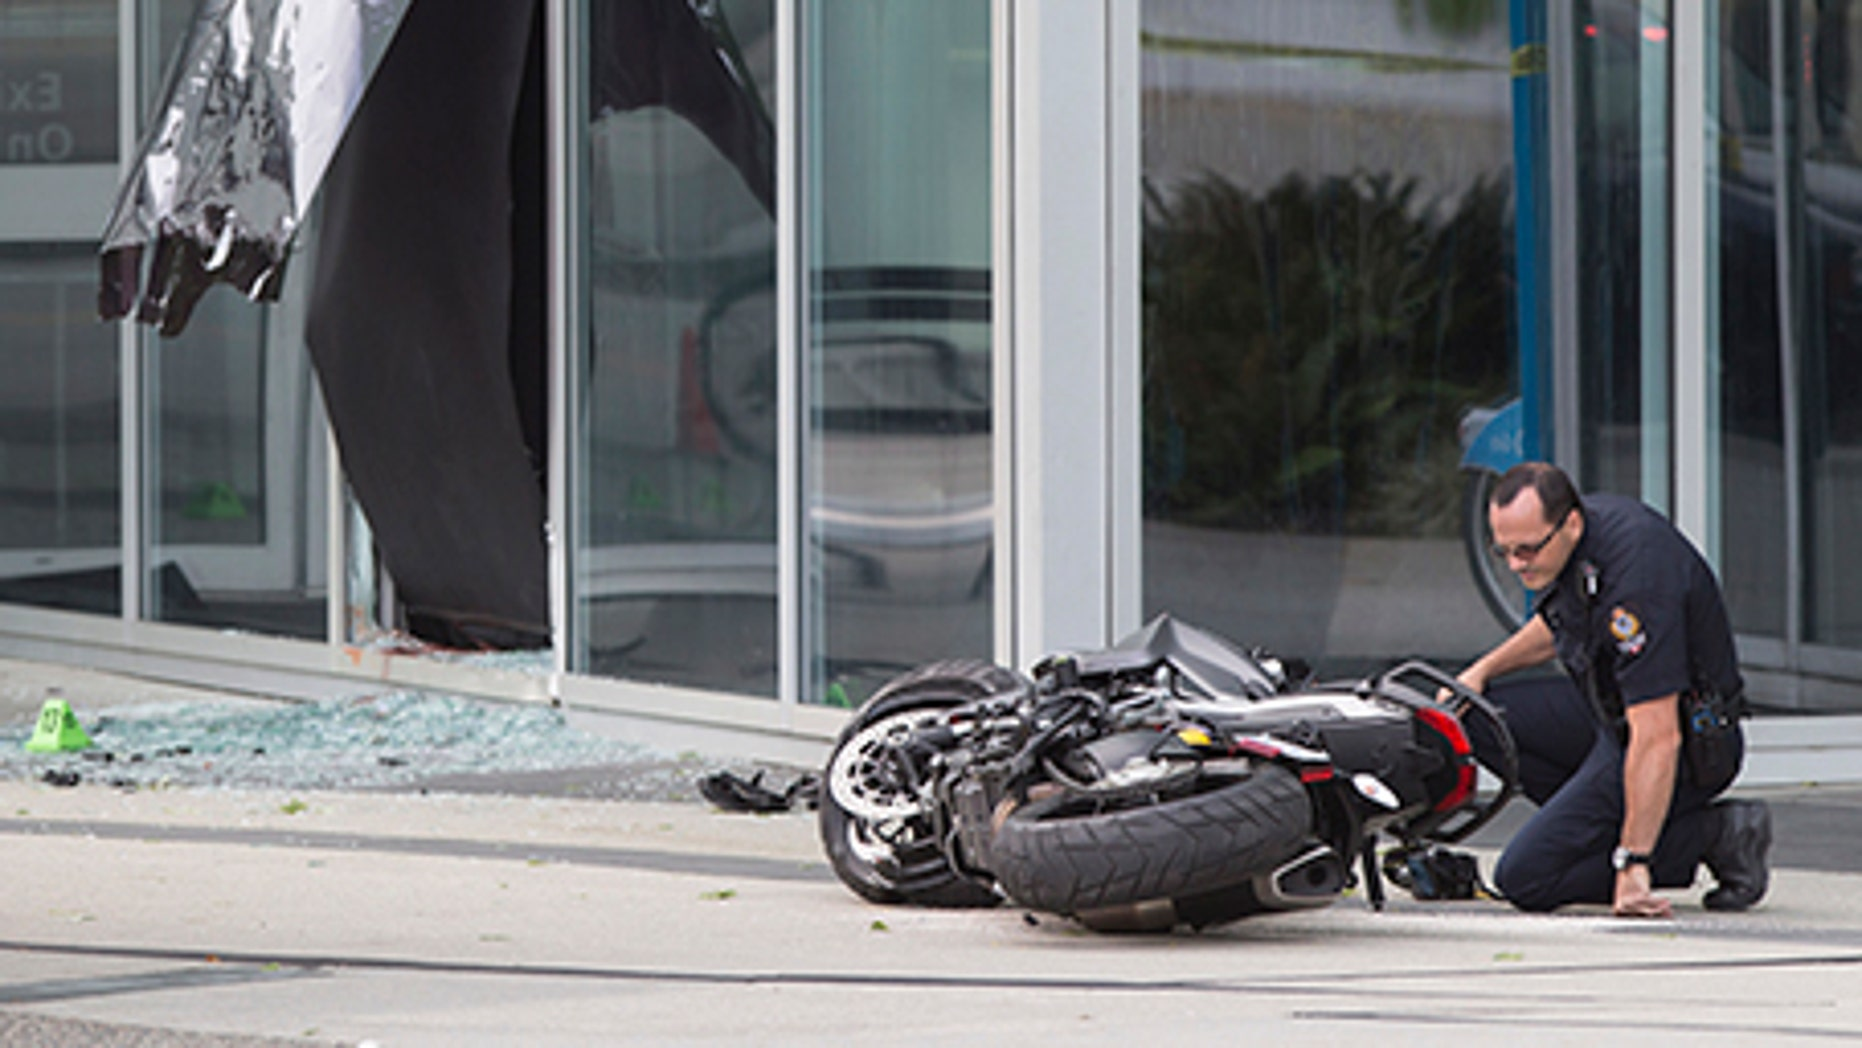 """A police officer examines a motorcycle after a female stunt driver working on the movie """"Deadpool 2"""" died after a crash on set, in Vancouver, B.C., on Aug. 14, 2017. Vancouver police say the driver was on a motorcycle when the crash occurred on the movie set on Monday morning."""